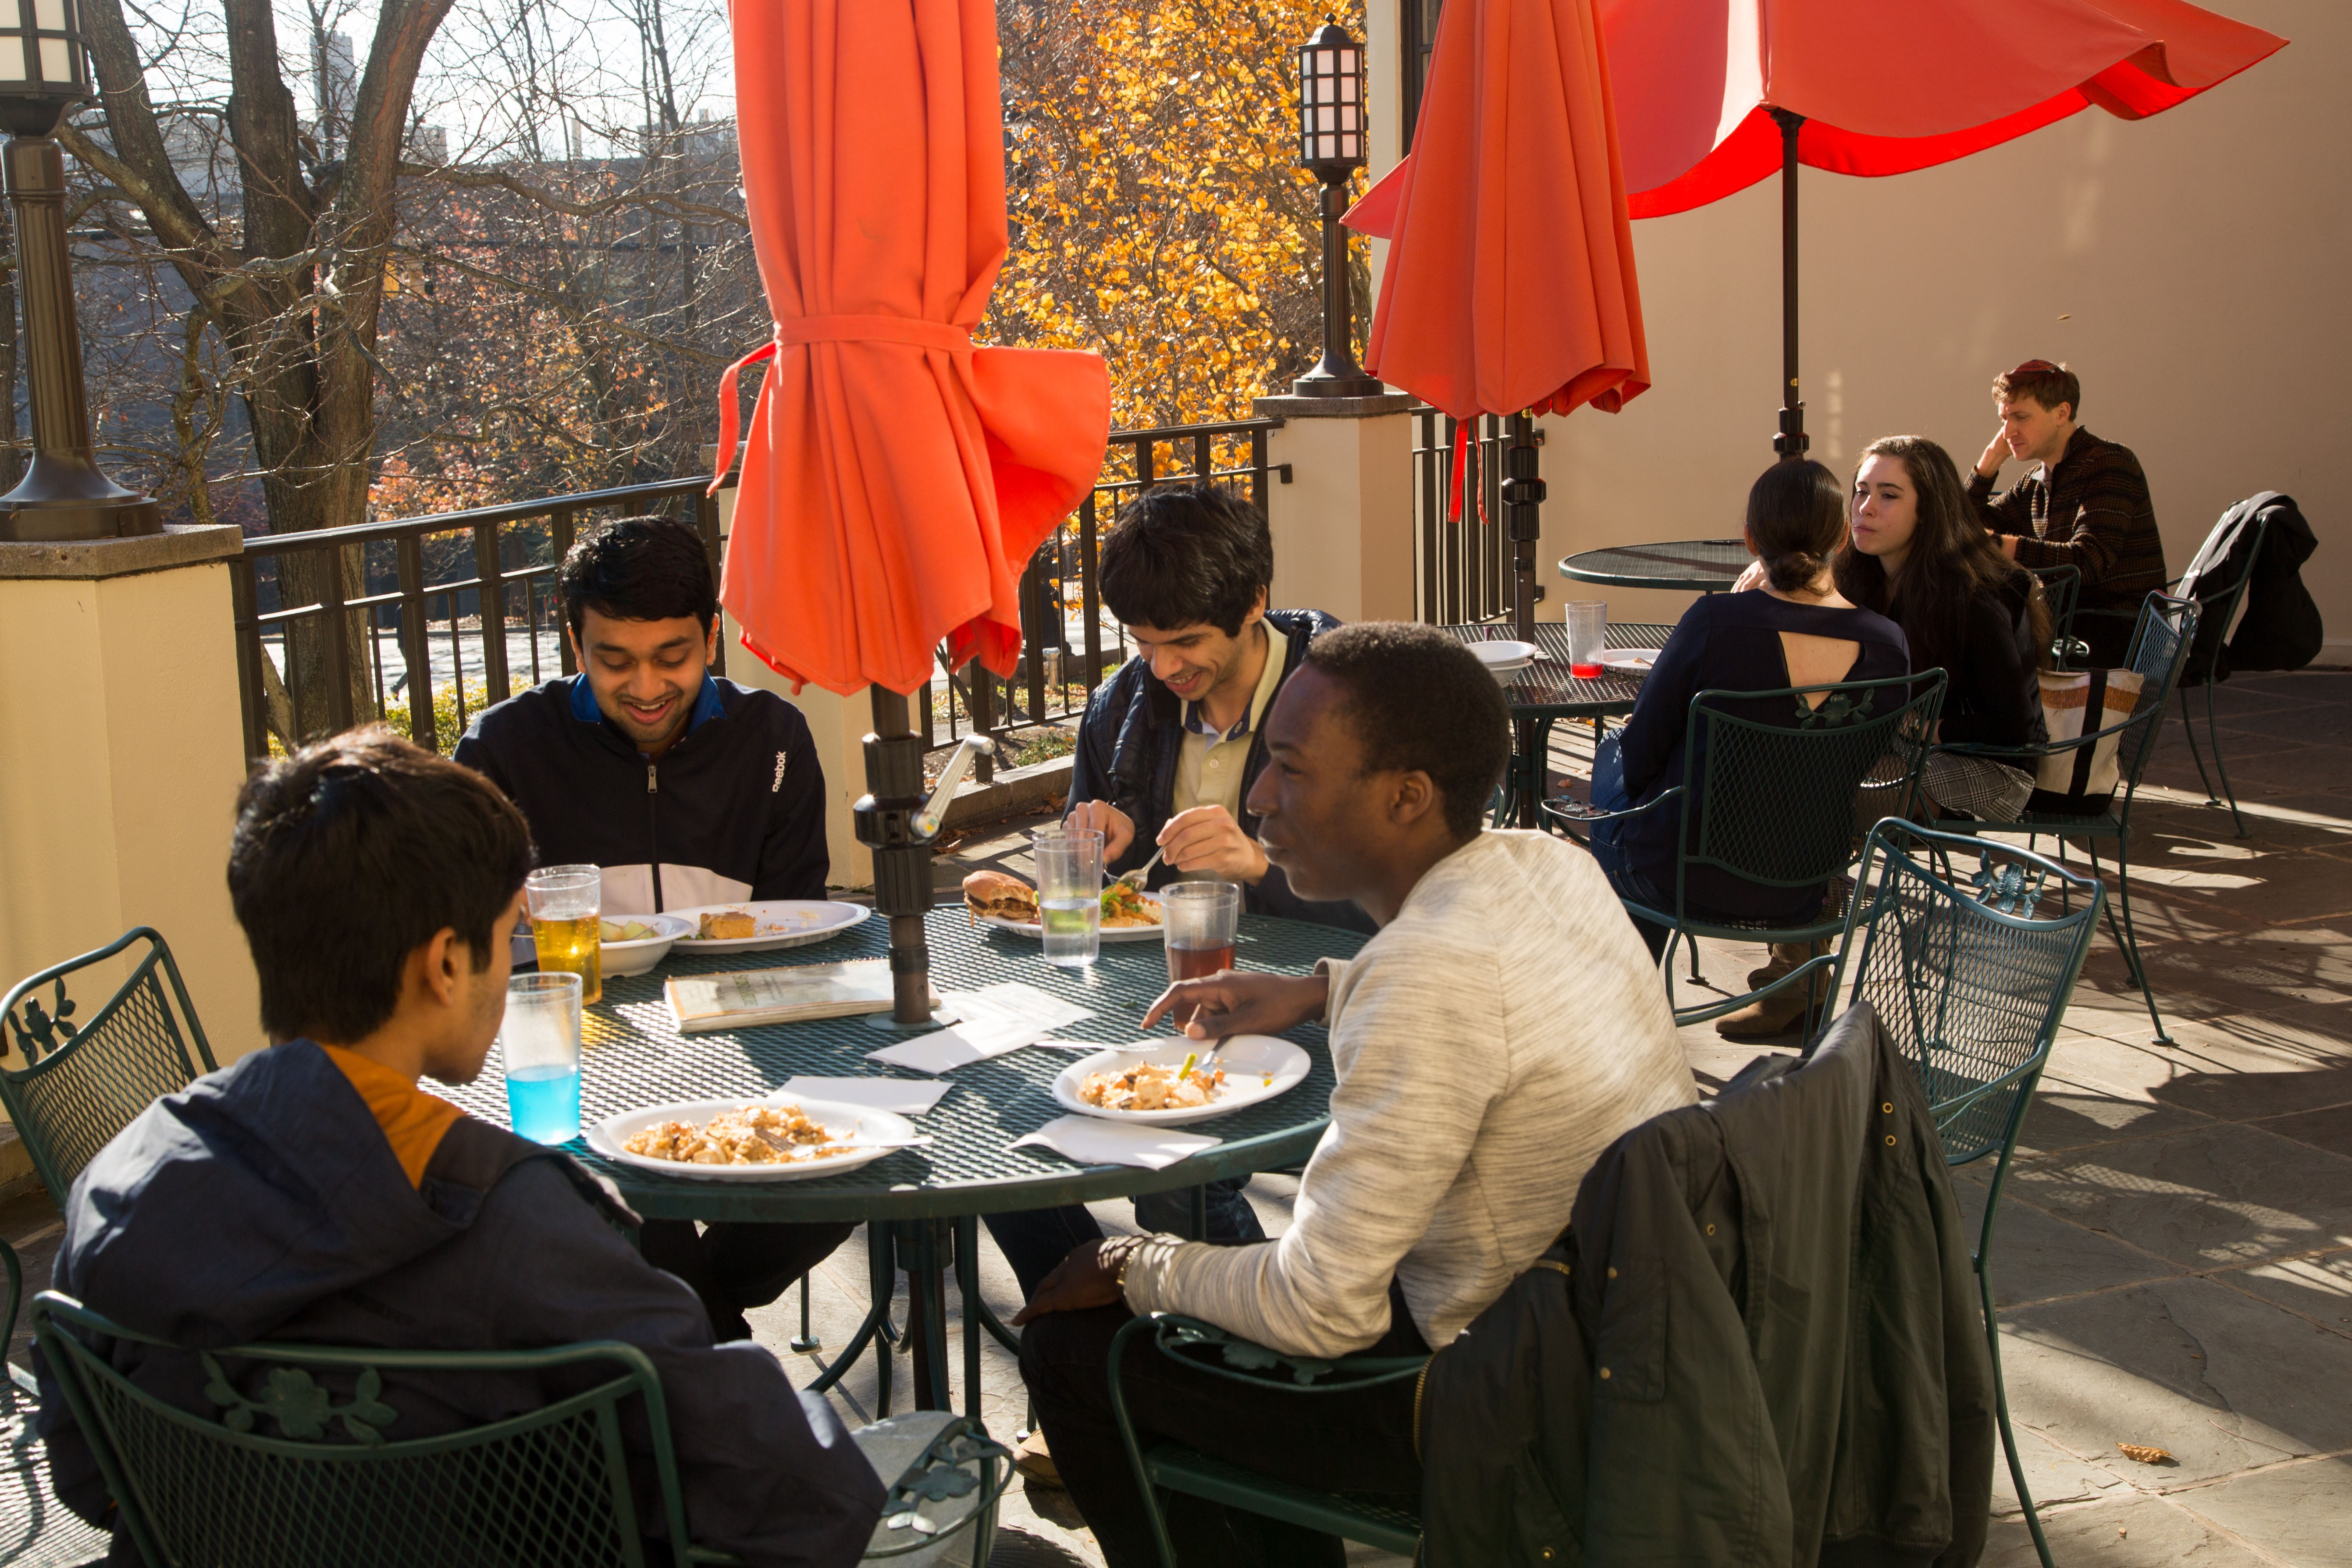 Students eating outside on a terrace.